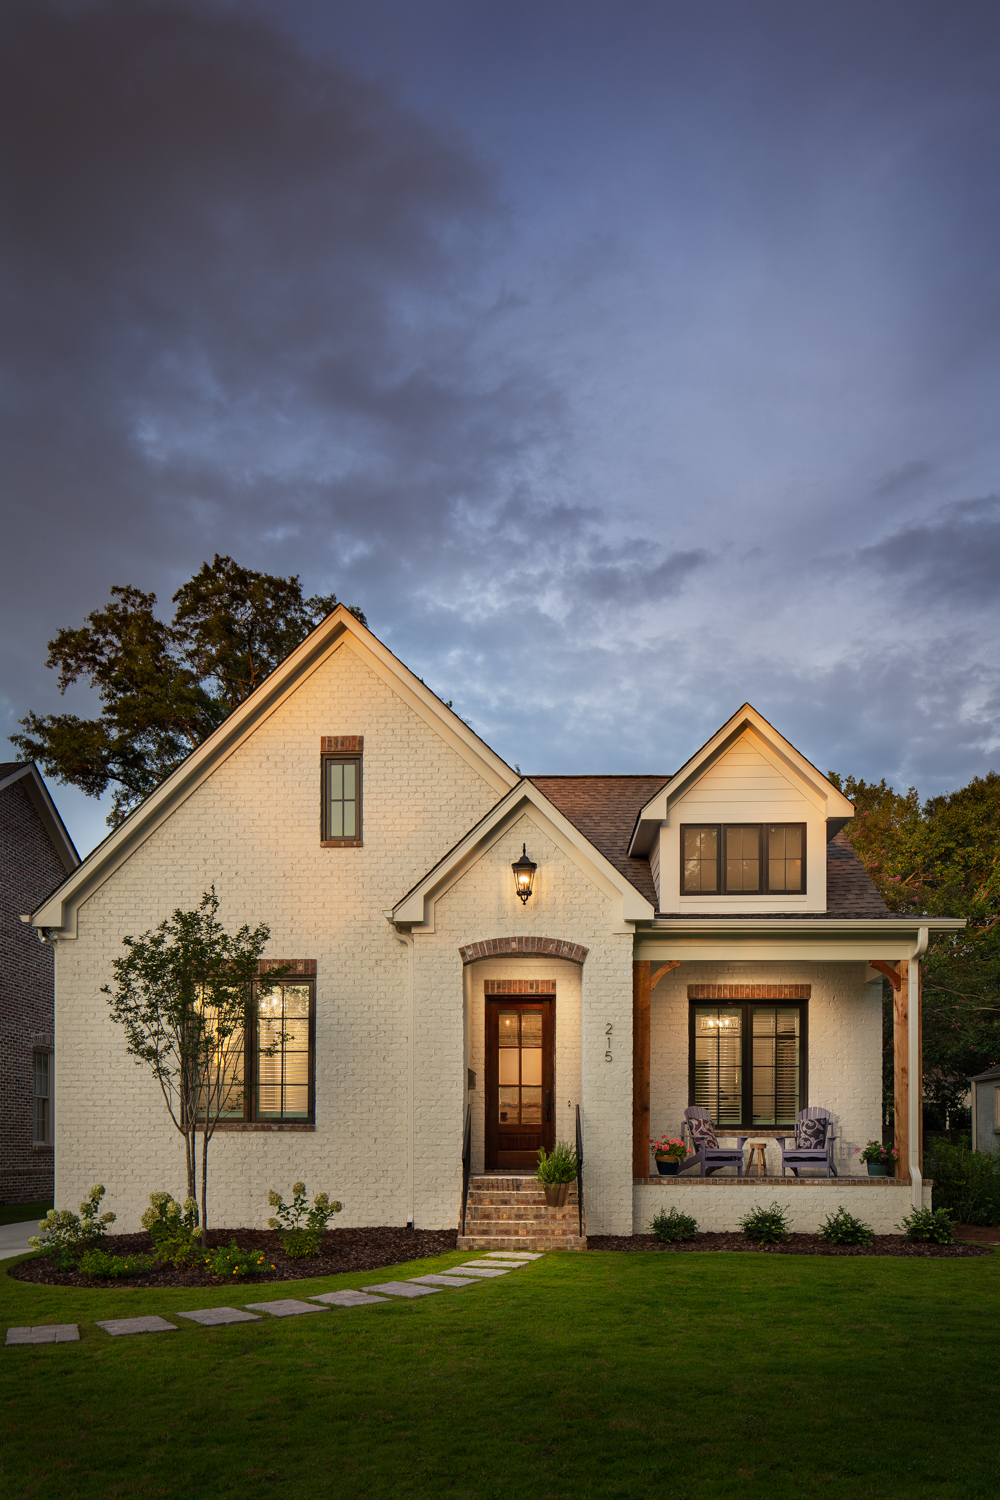 Project Edgewood - Residential new construction in Homewood Alabama photographed for Willow Homes, Willow Design Studio, and Triton Stone Group